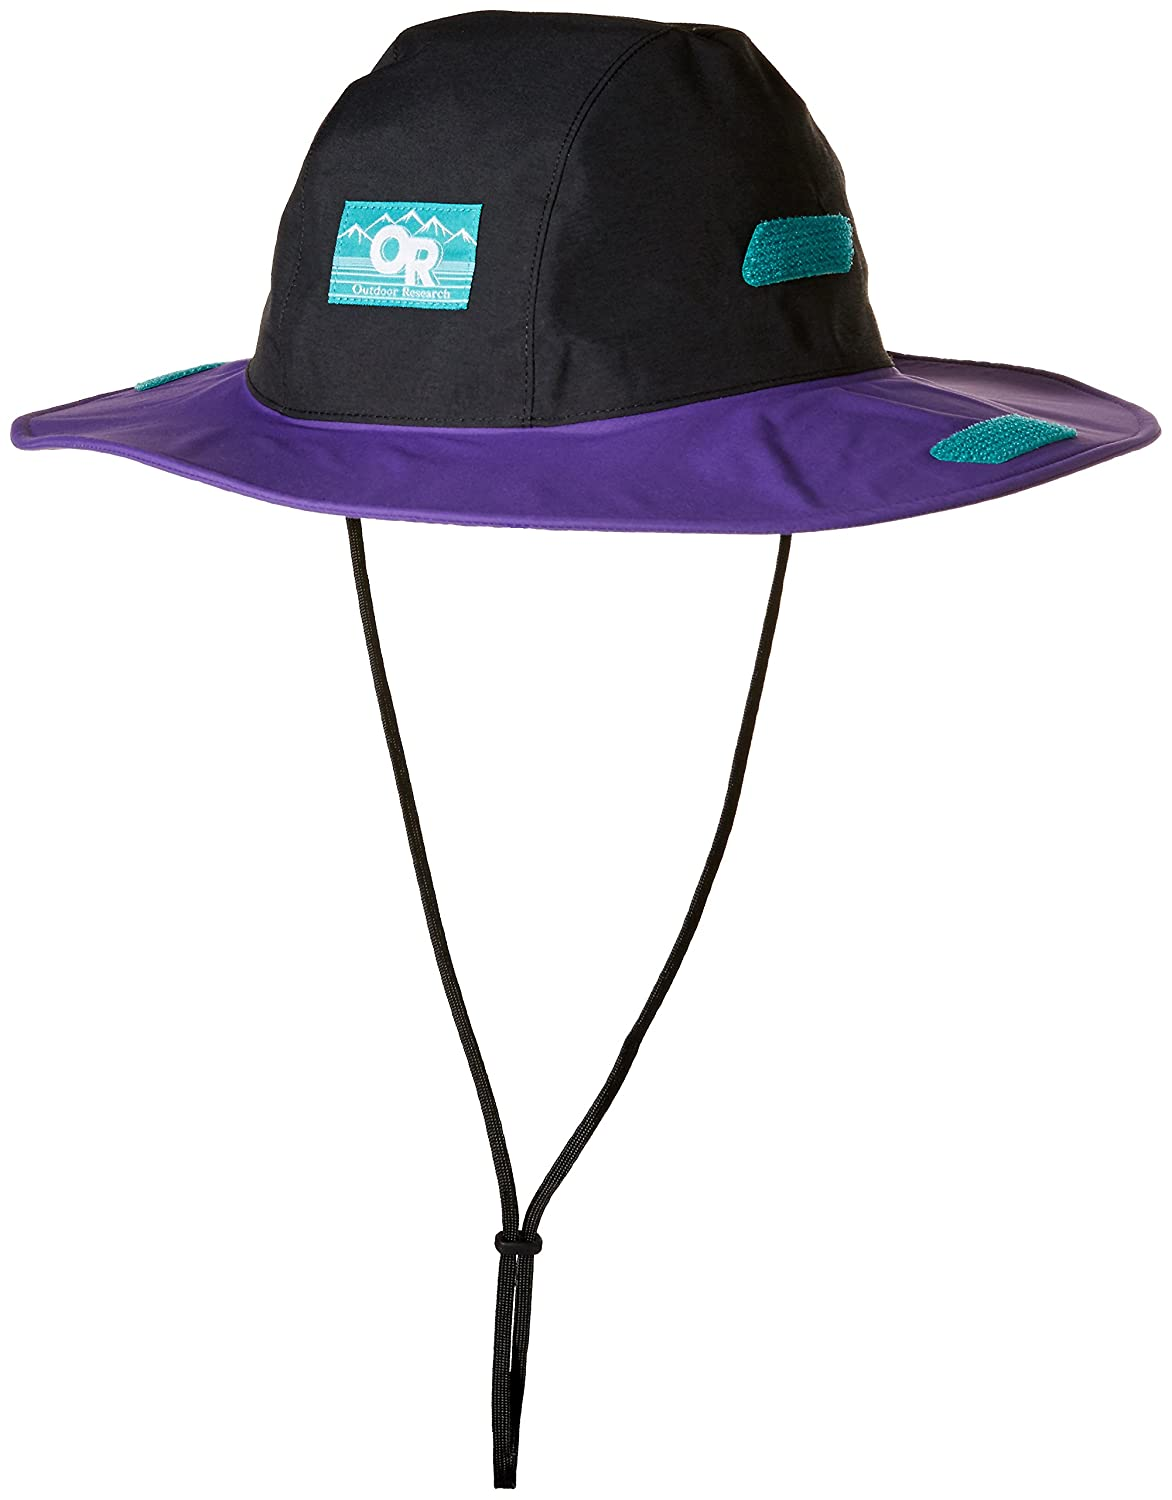 0489b1b97d5 Amazon.com  Outdoor Research Seattle Sombrero Hat  Sports   Outdoors